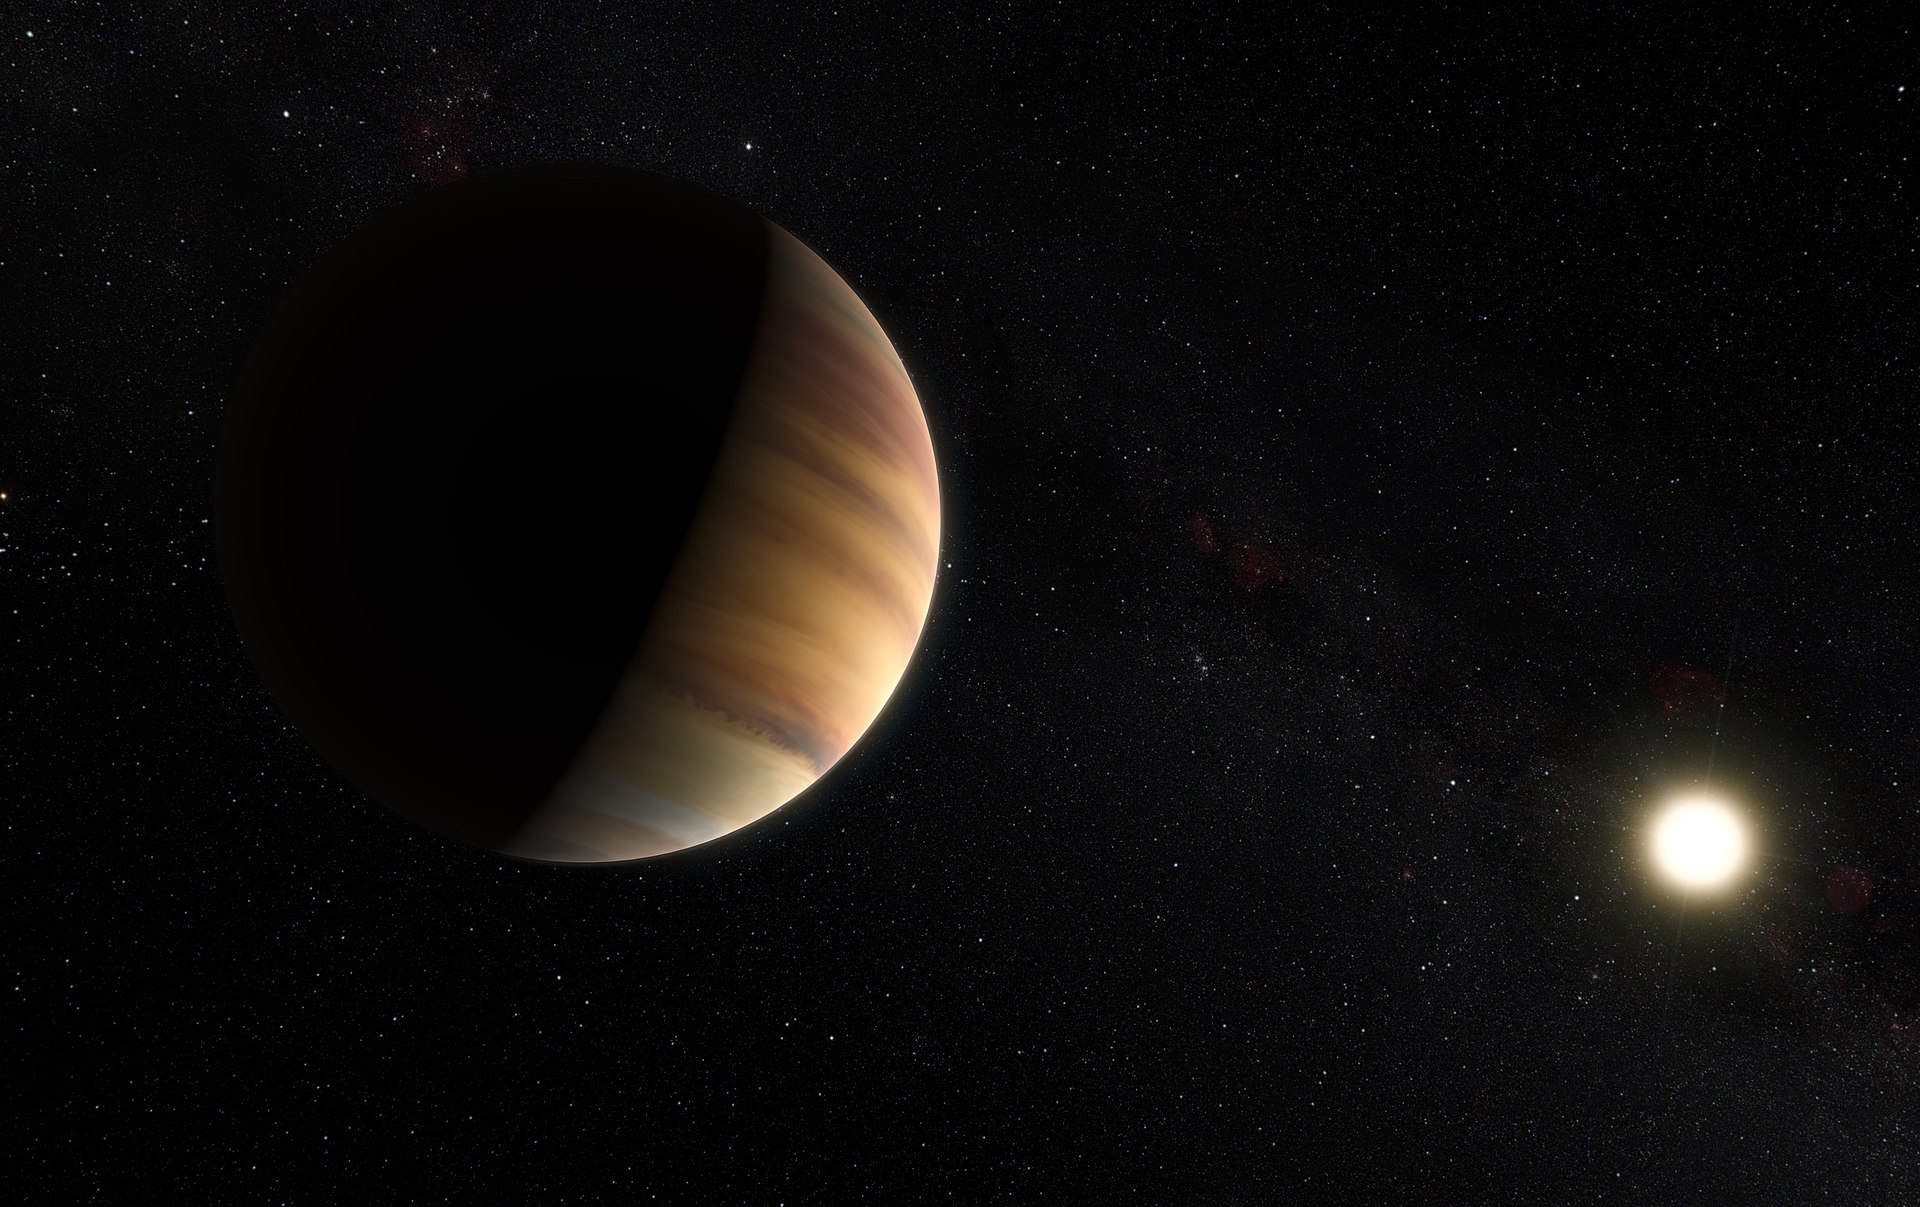 Artist impression of the exoplanet 51 Pegasi b.jpg